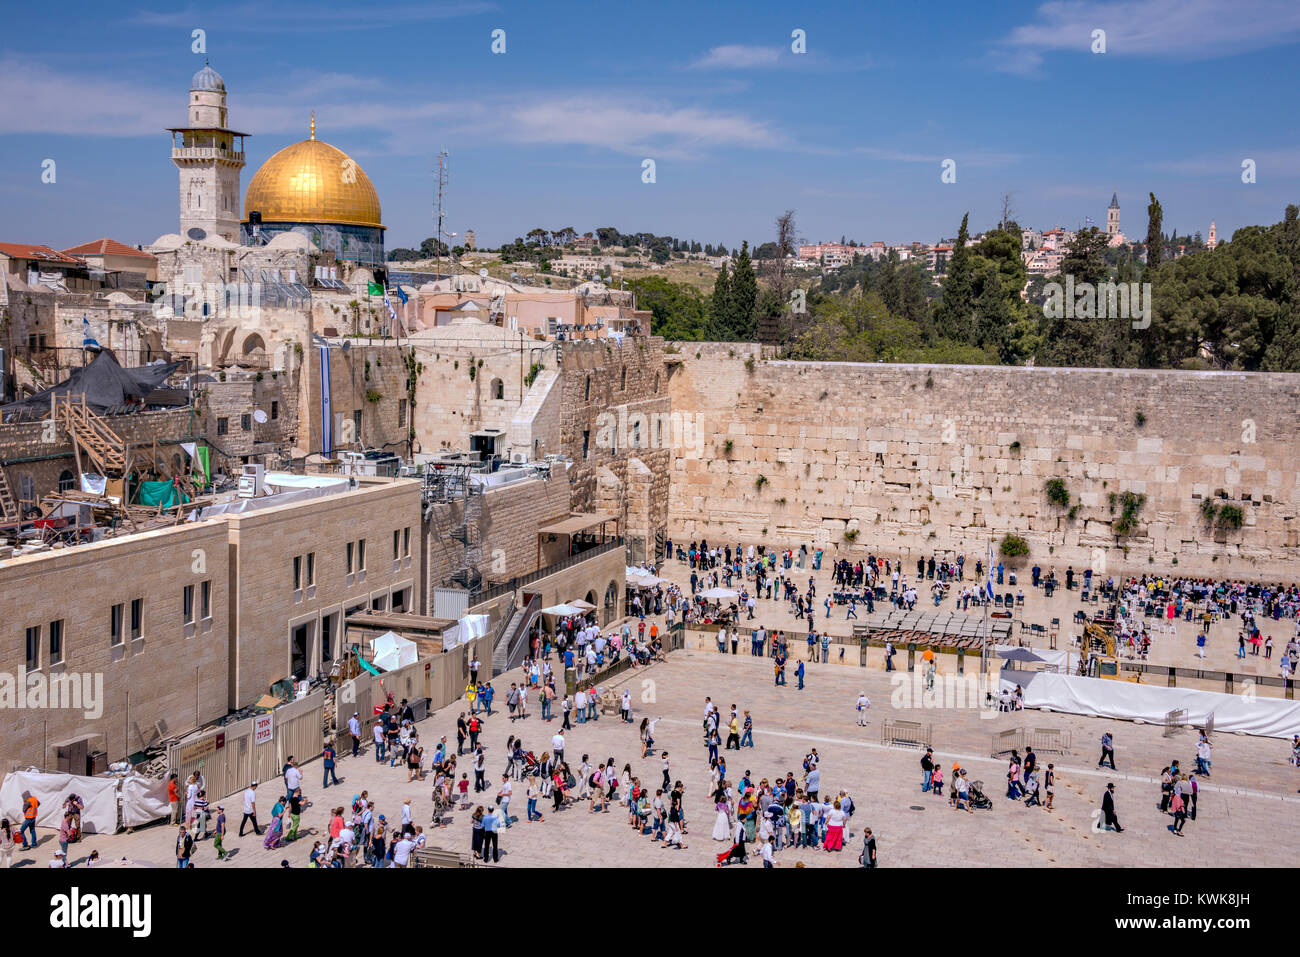 View of the wailing wall and temple in the city of Jerusalem, Israel - Stock Image